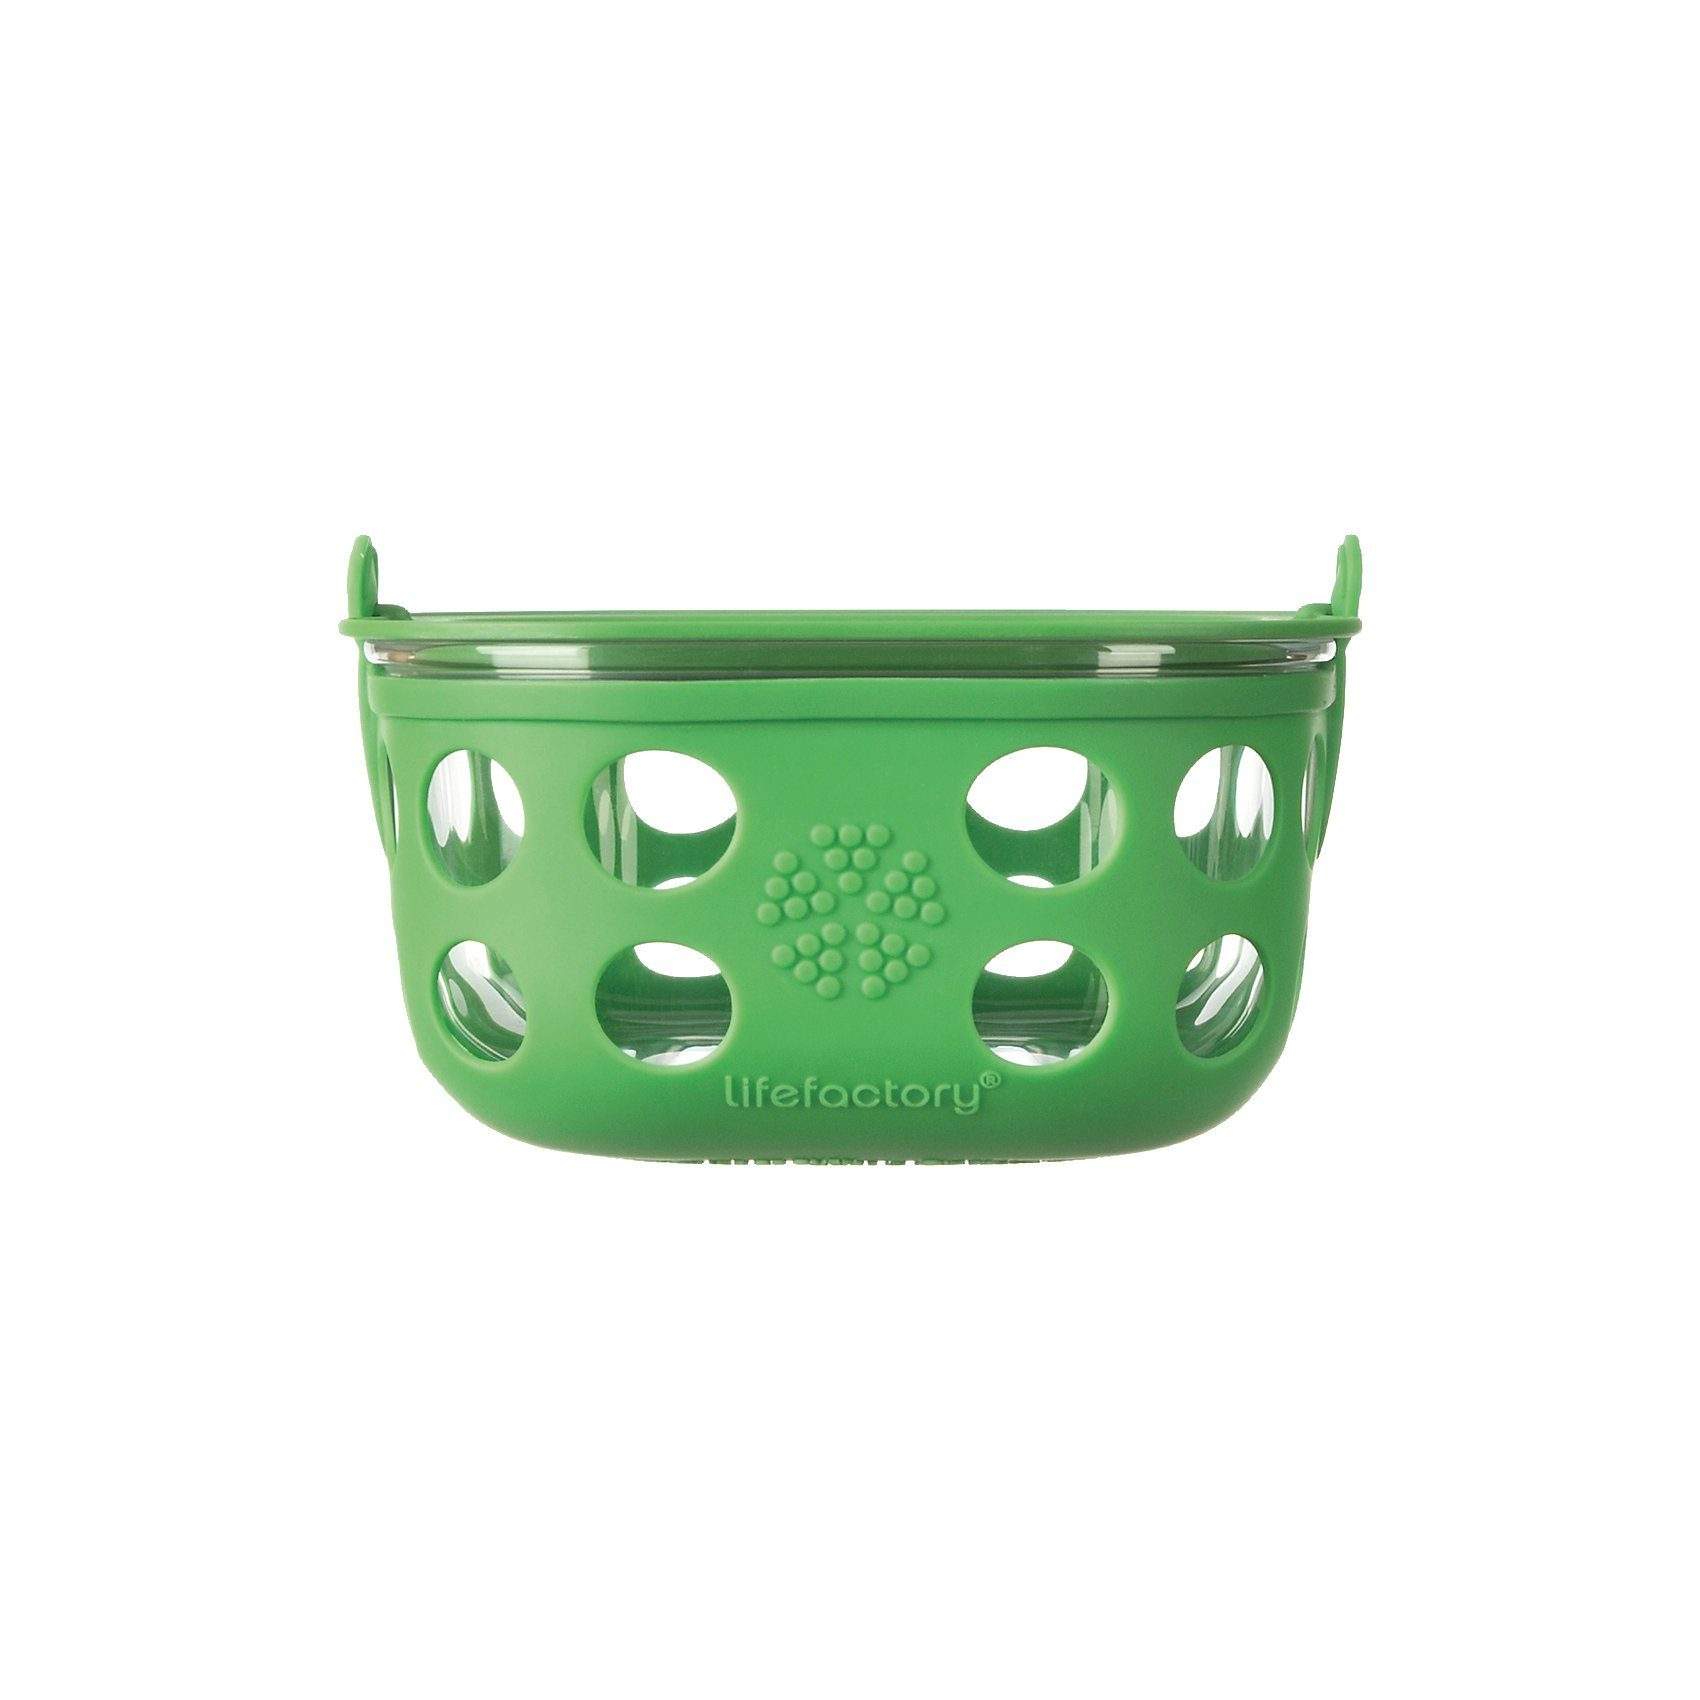 Lifefactory Lunchbox Glas grass green, 950 ml